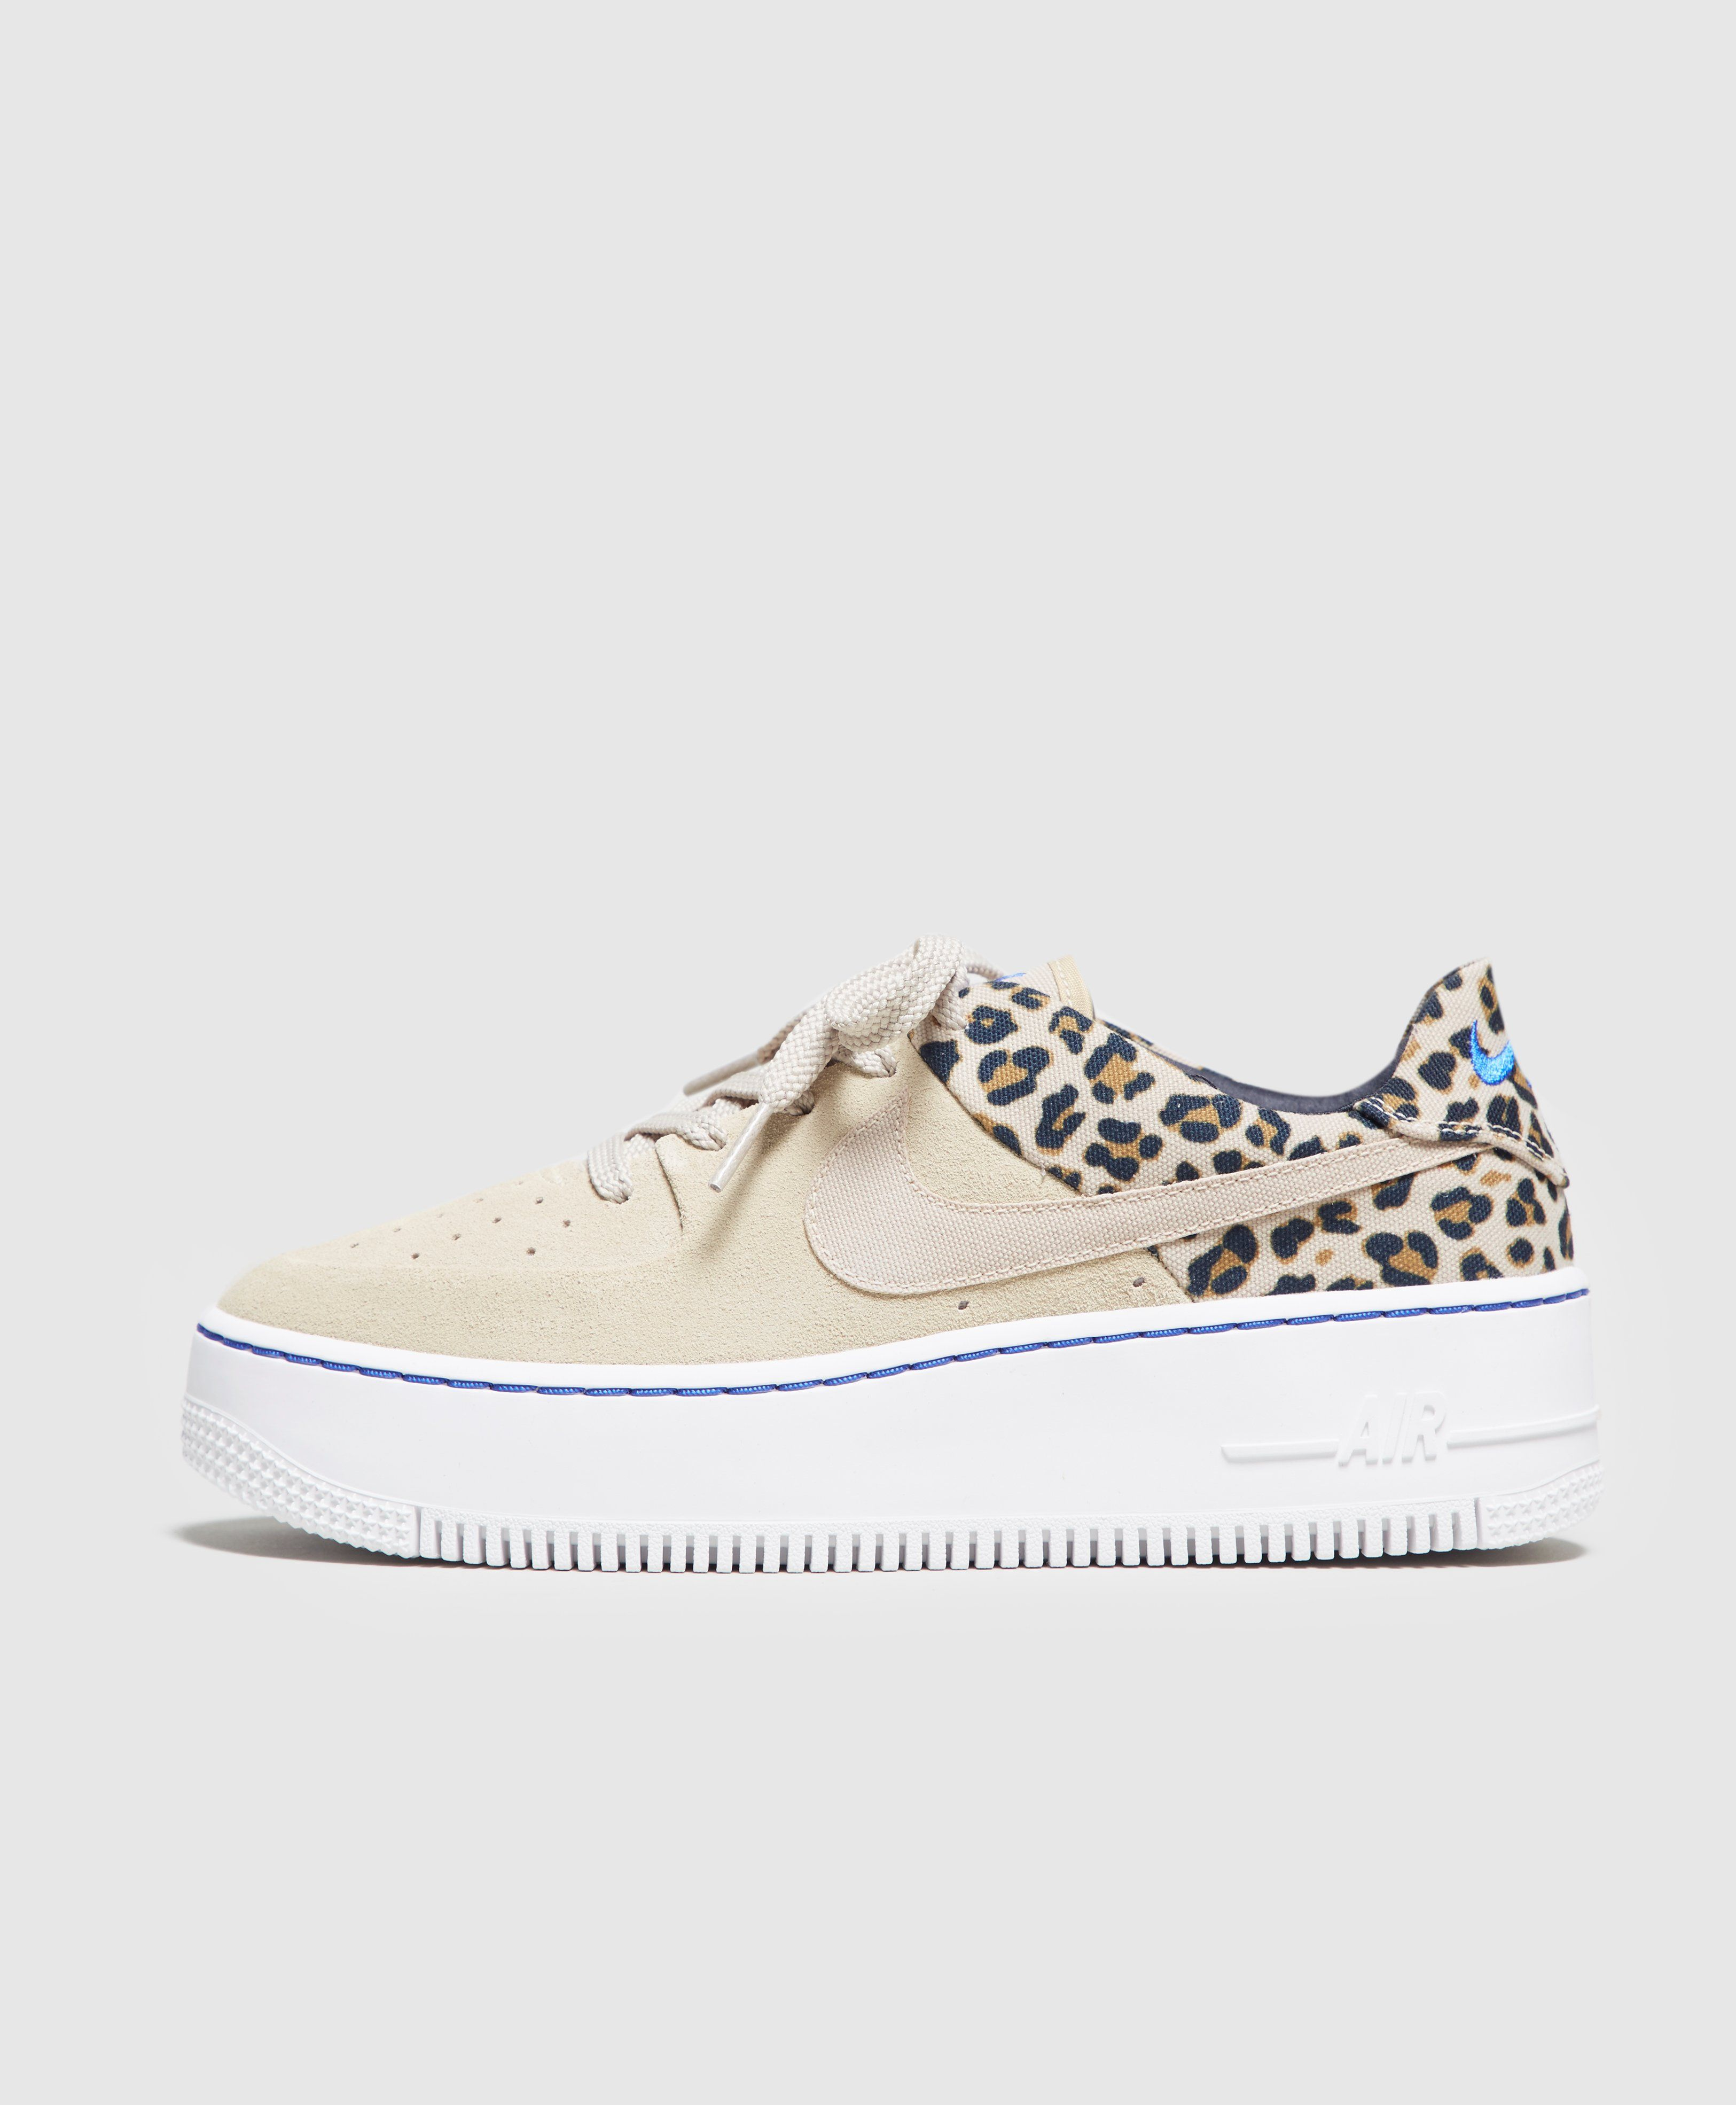 Nike Air Force 1 Sage 'Leopard' Women's